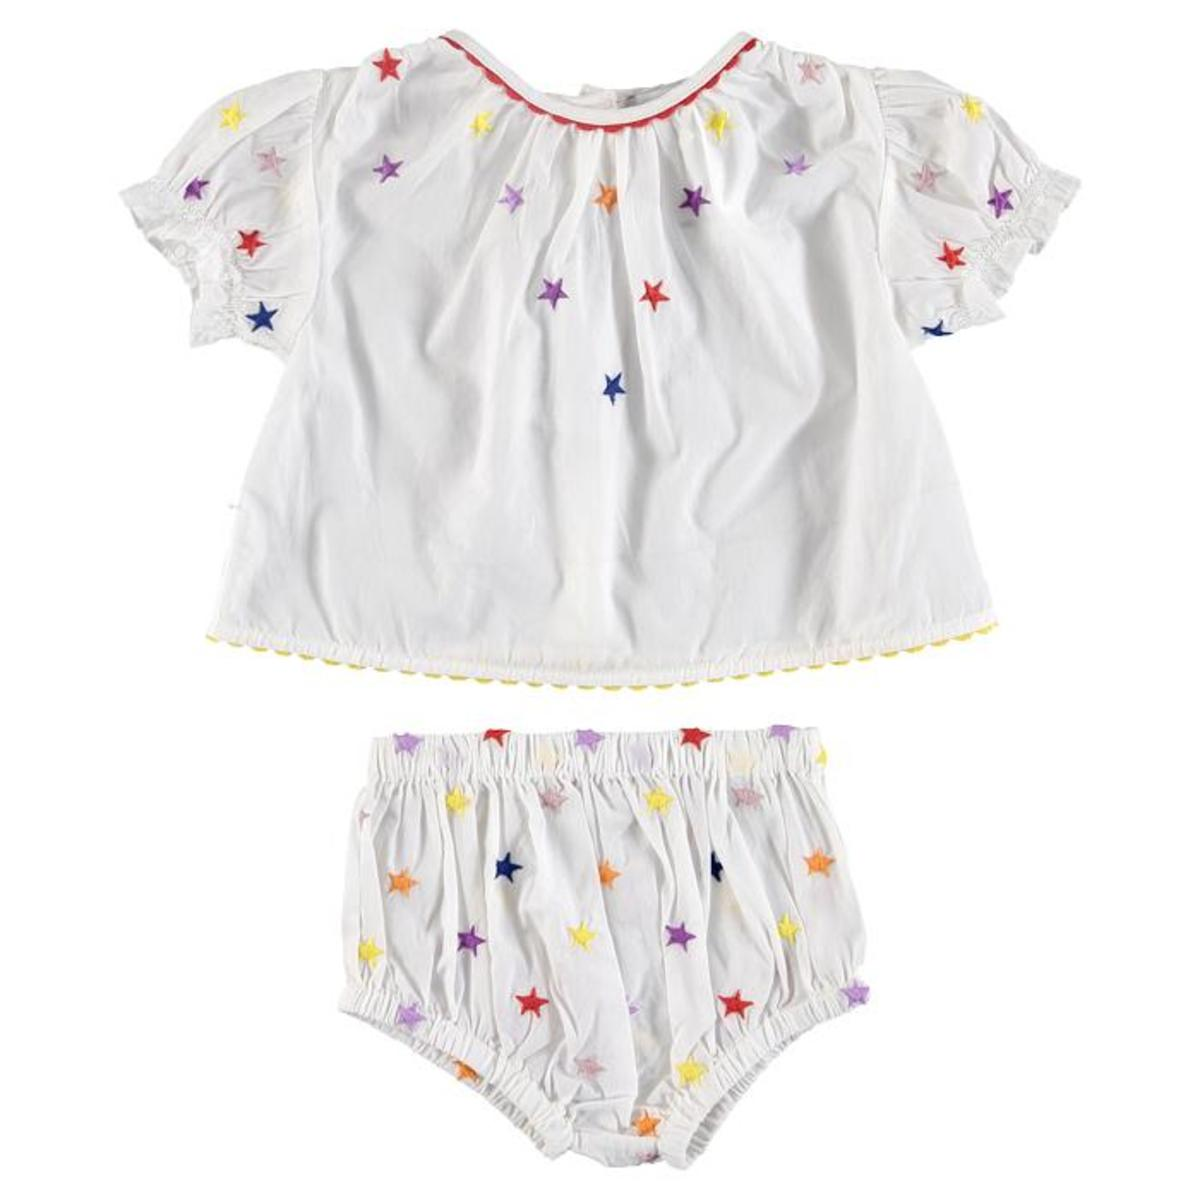 c0f54fd4df6fb KIDS Stella McCartney Baby Two Piece Set Shirt And Bloomers with  Multicolour Embroidered Stars - White